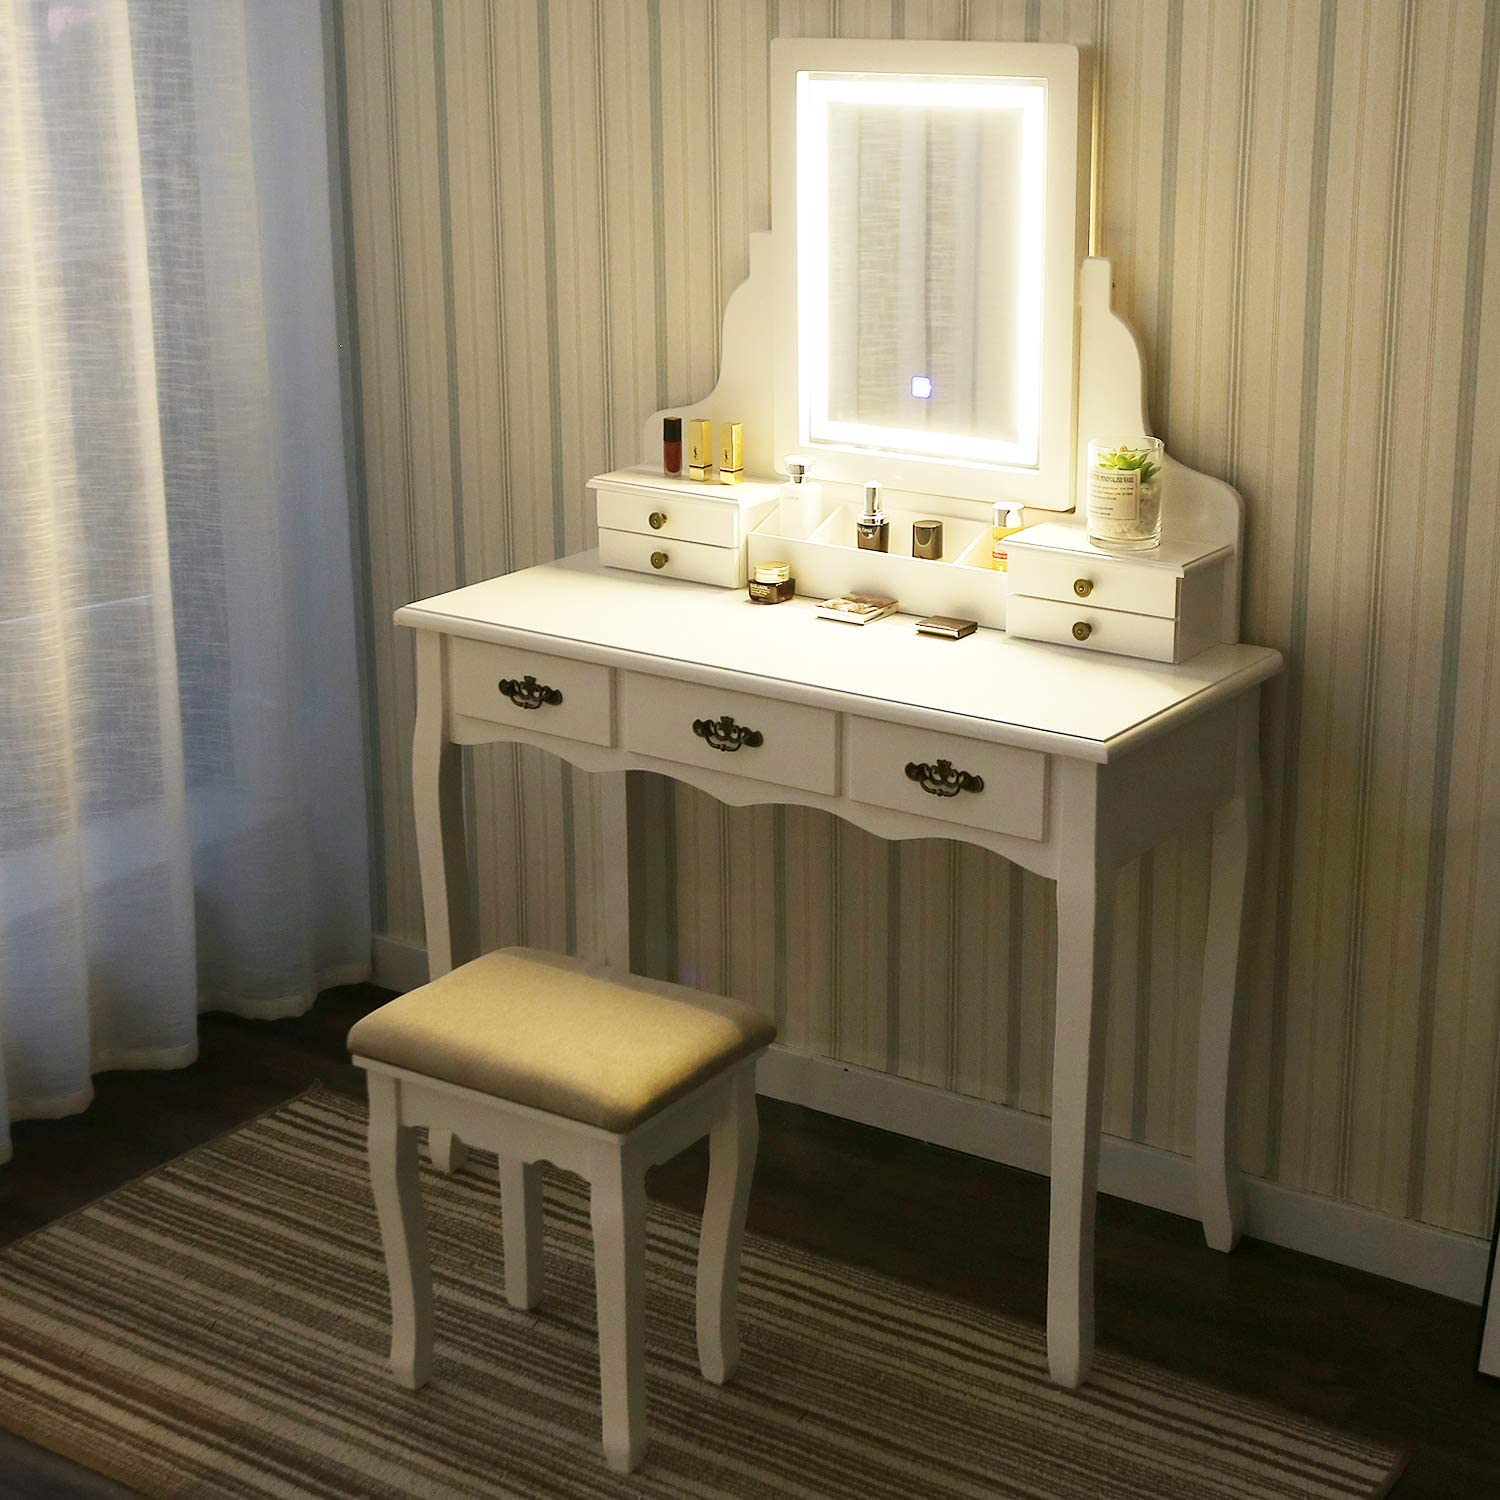 YOURLITEAMZ Vanity Table Set with Touch Screen Adjustable Lighted Mirror